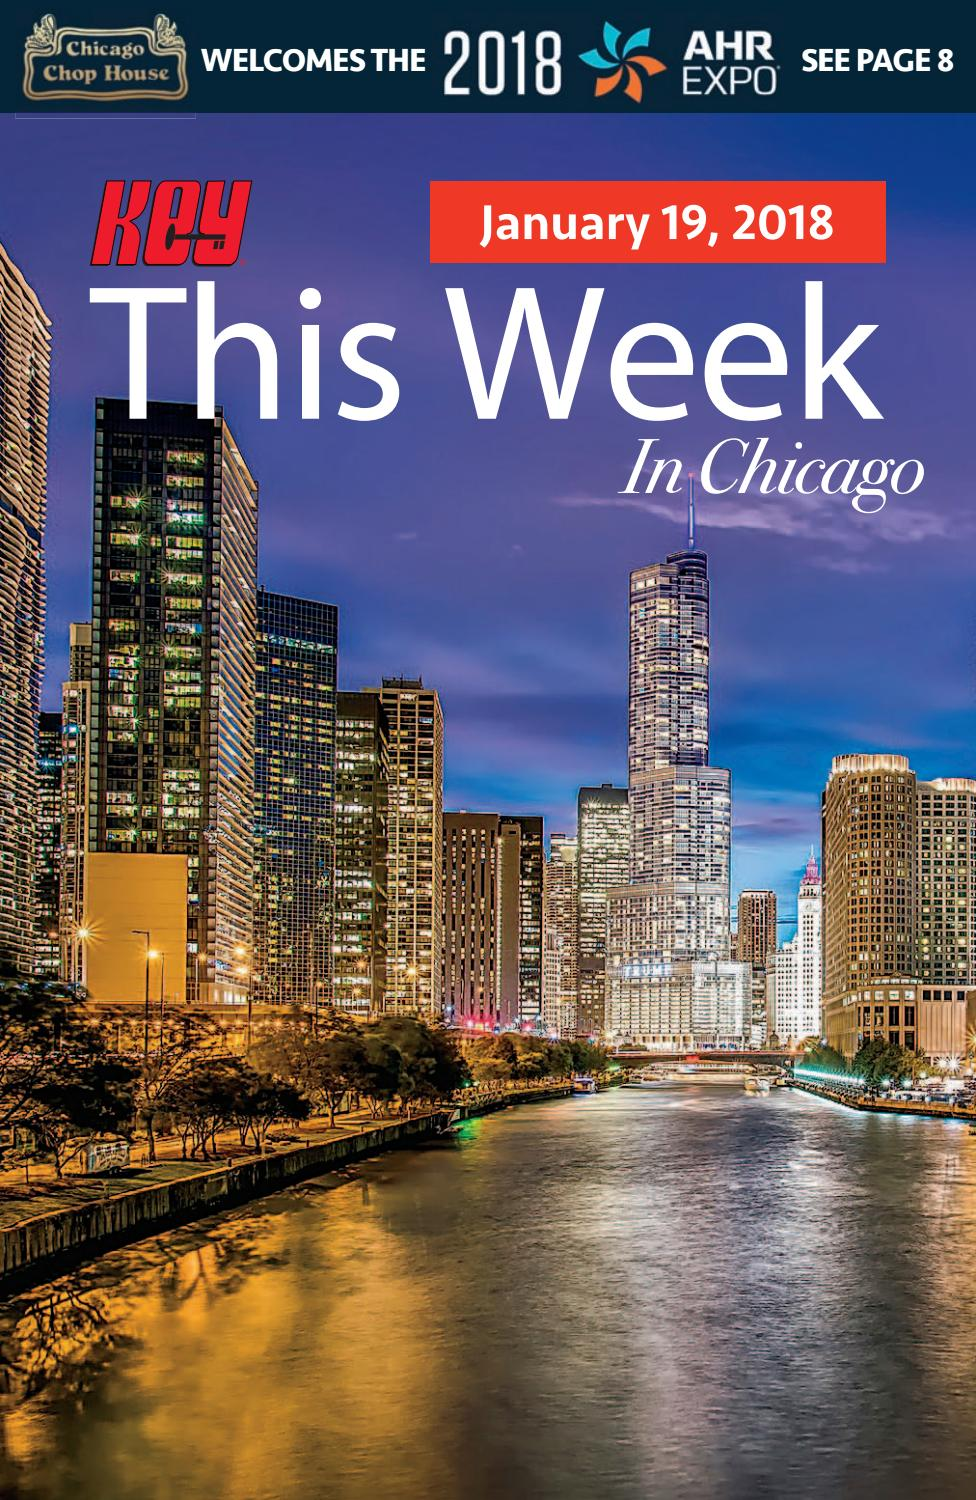 KEY This Week in Chicago, January 19, 2018 Issue by KEY This